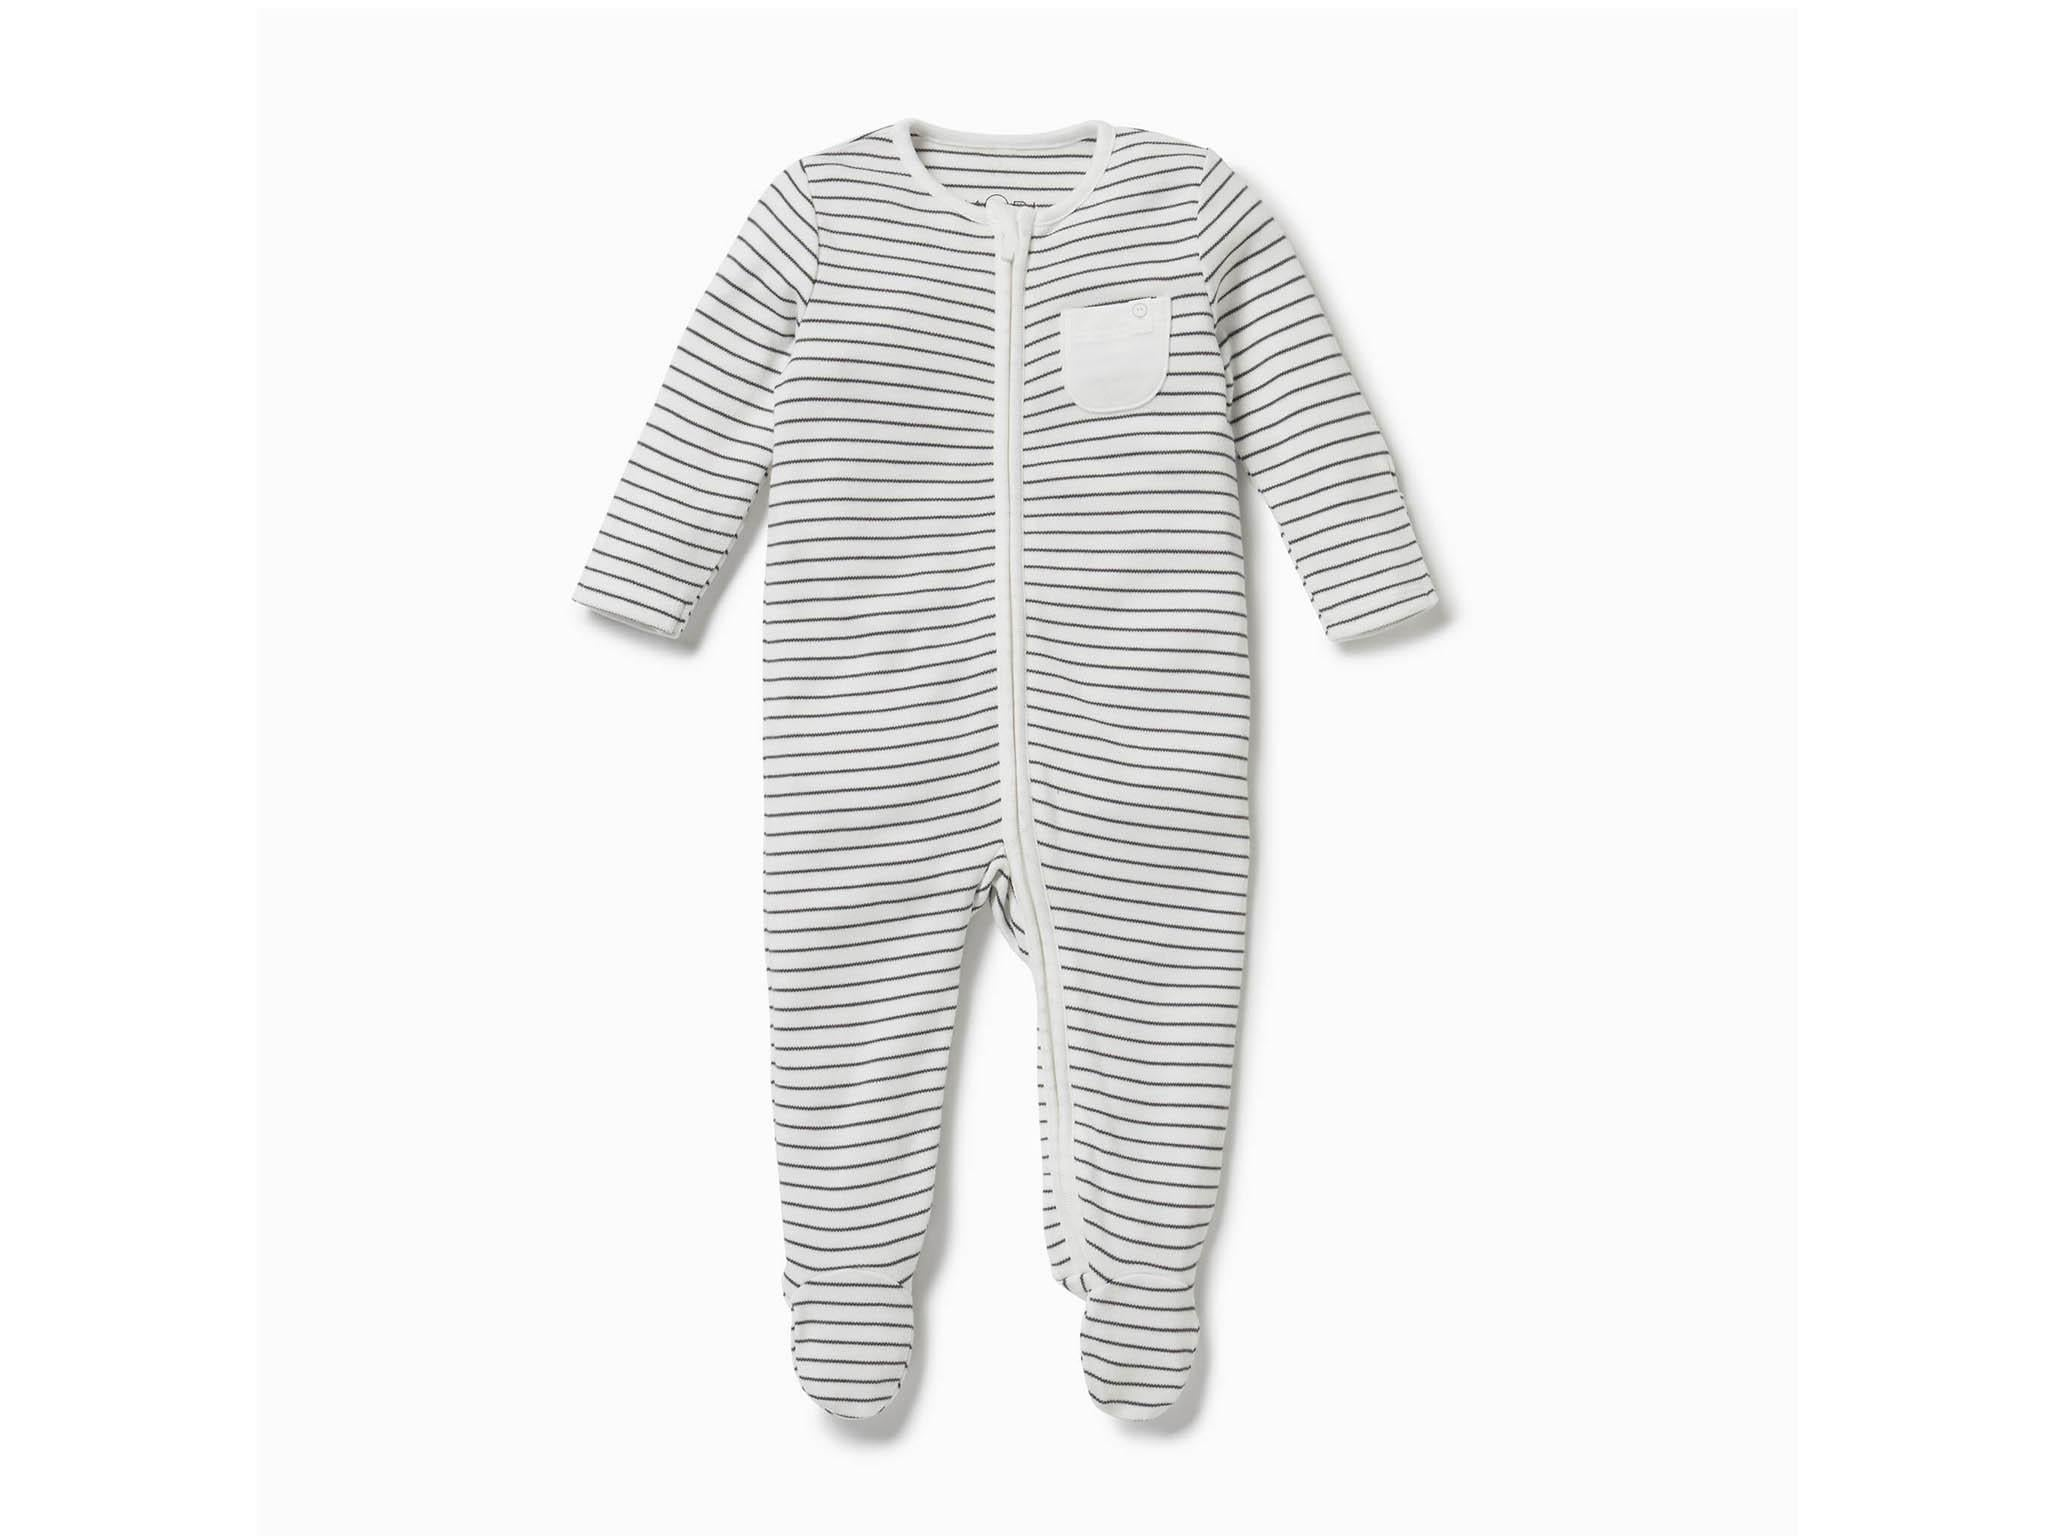 Integrated Scratch Mitts Soft Organic Cotton Piccalilly Baby Sleepsuit with Feet Vegetable Print White with All-Over Fruit